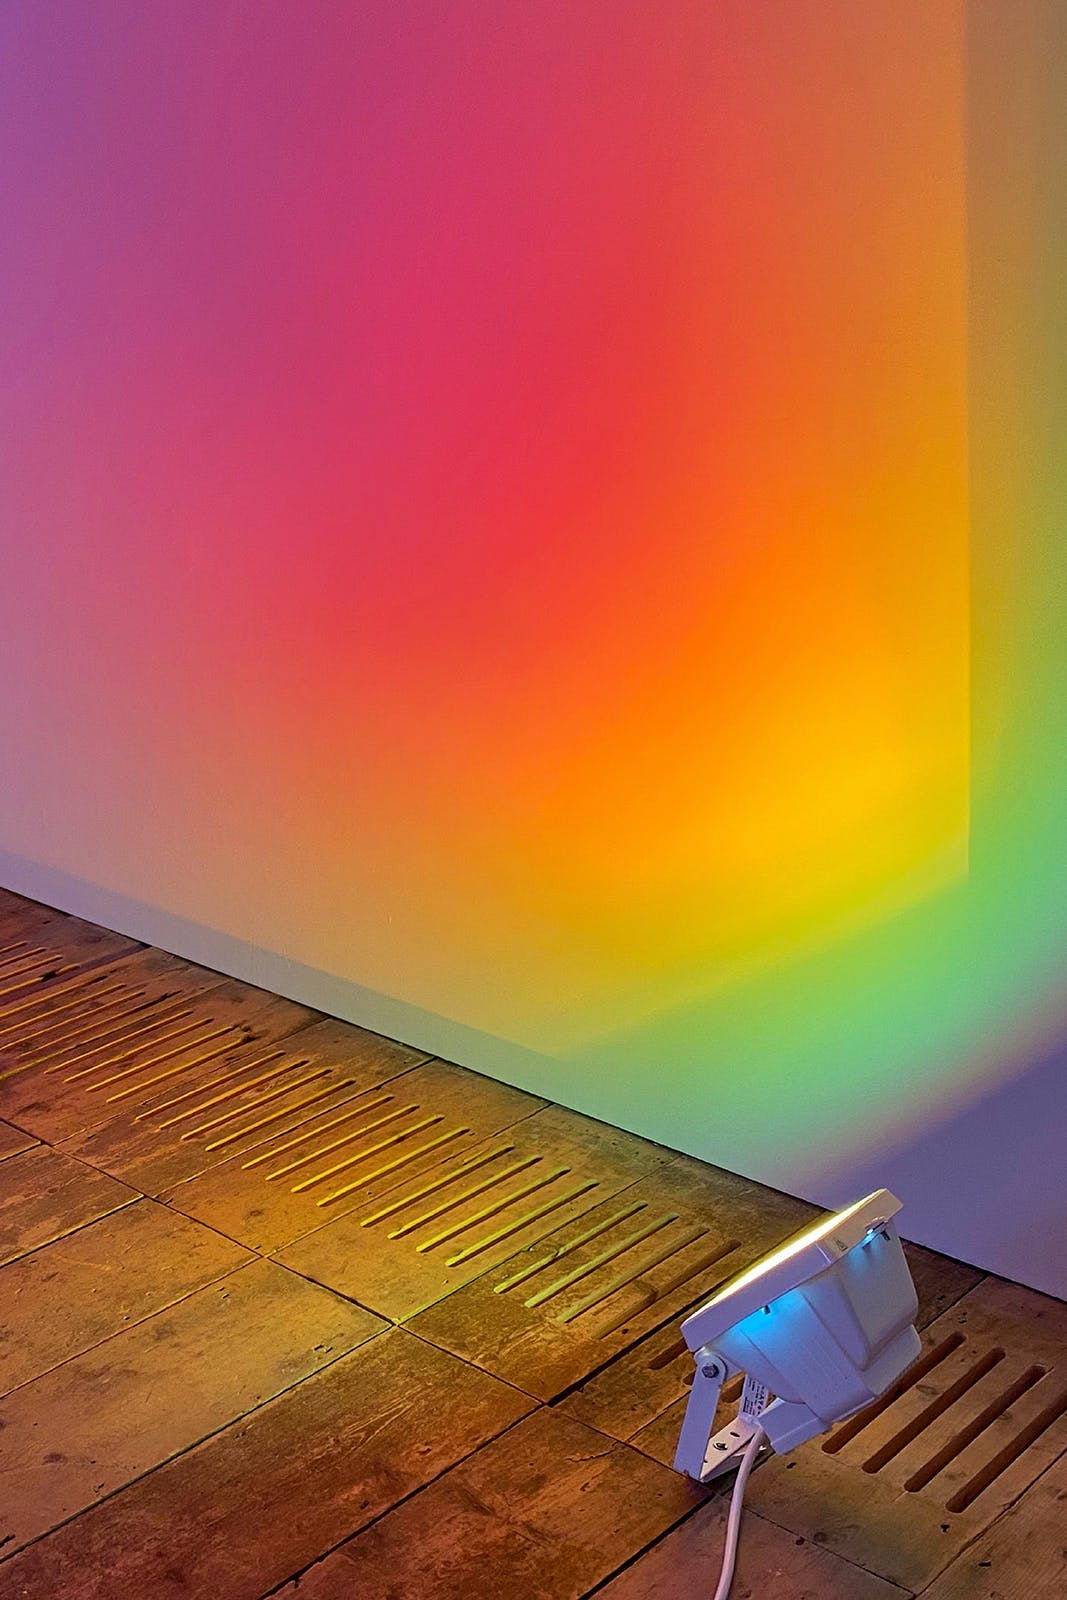 Ann Veronica Janssens: Hot Pink Turquoise, Exhibition, Type, Print, Graphic Design by Wolfe Hall